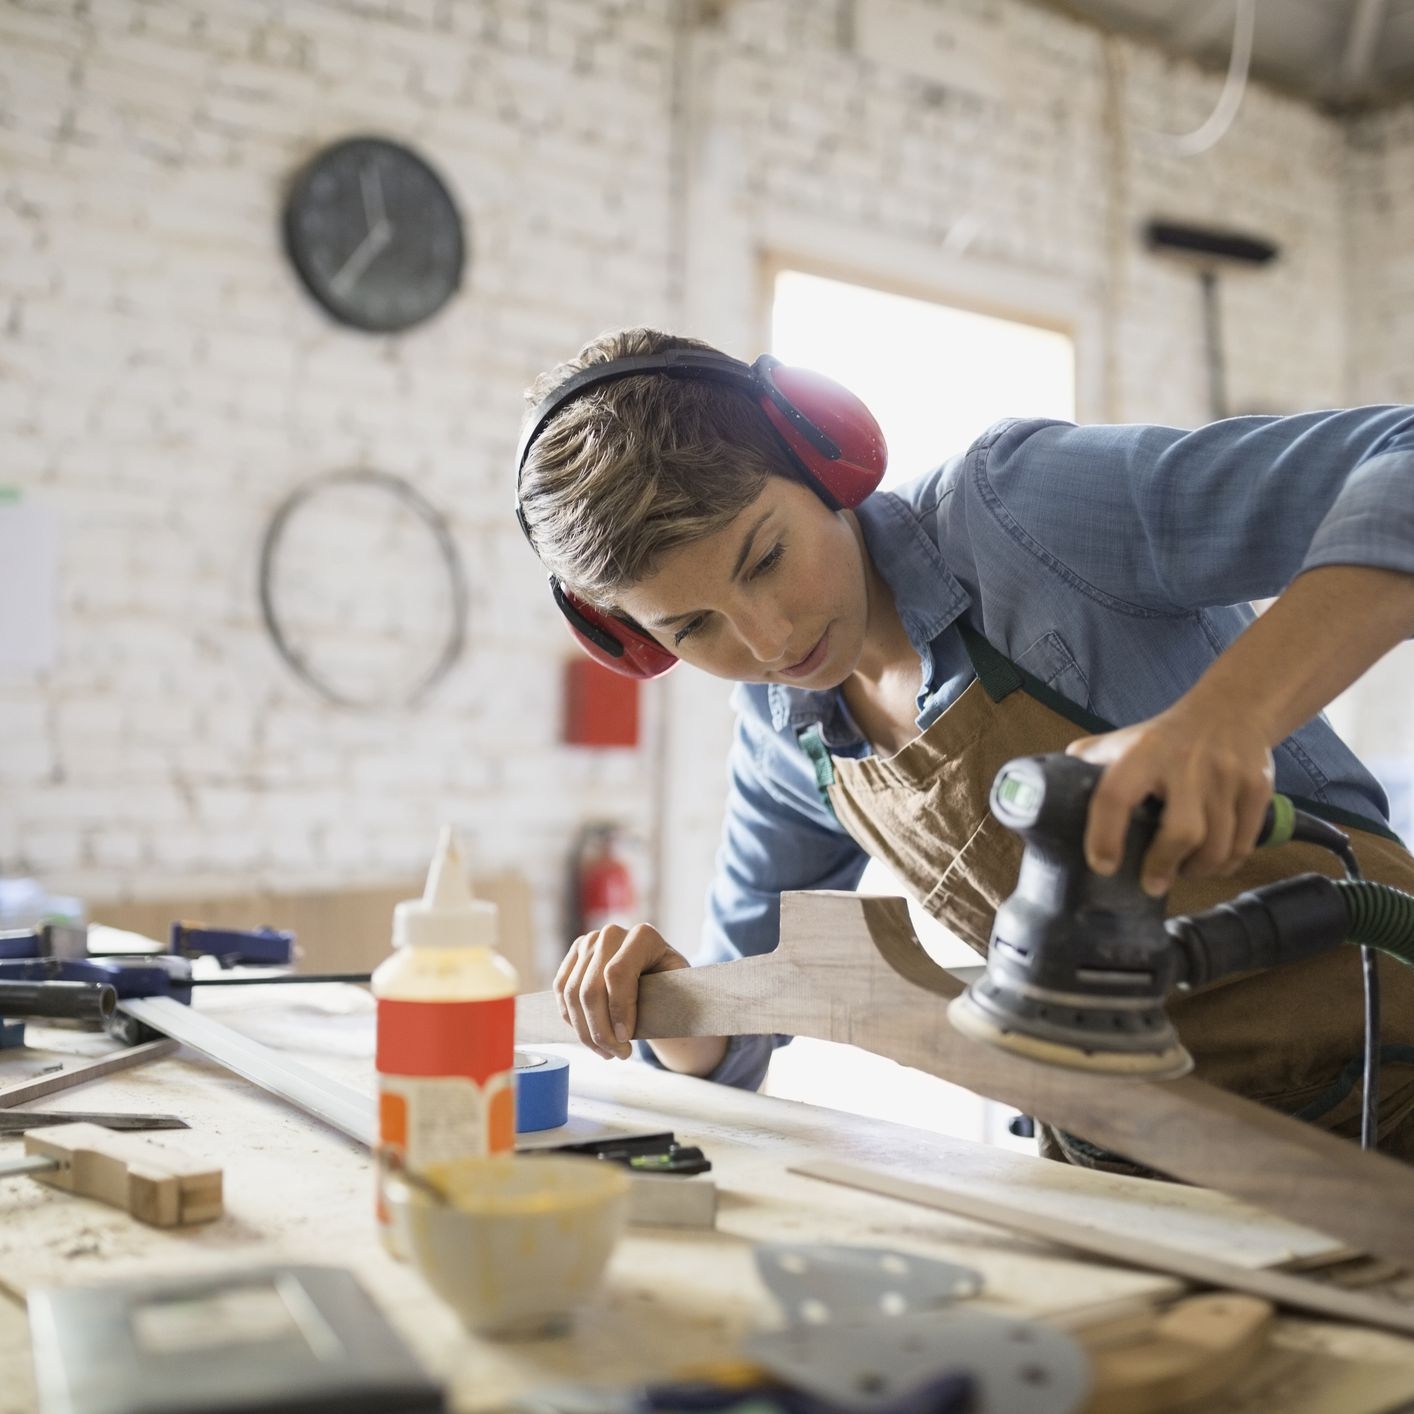 Woodworking Problem Solving Tips and Tricks